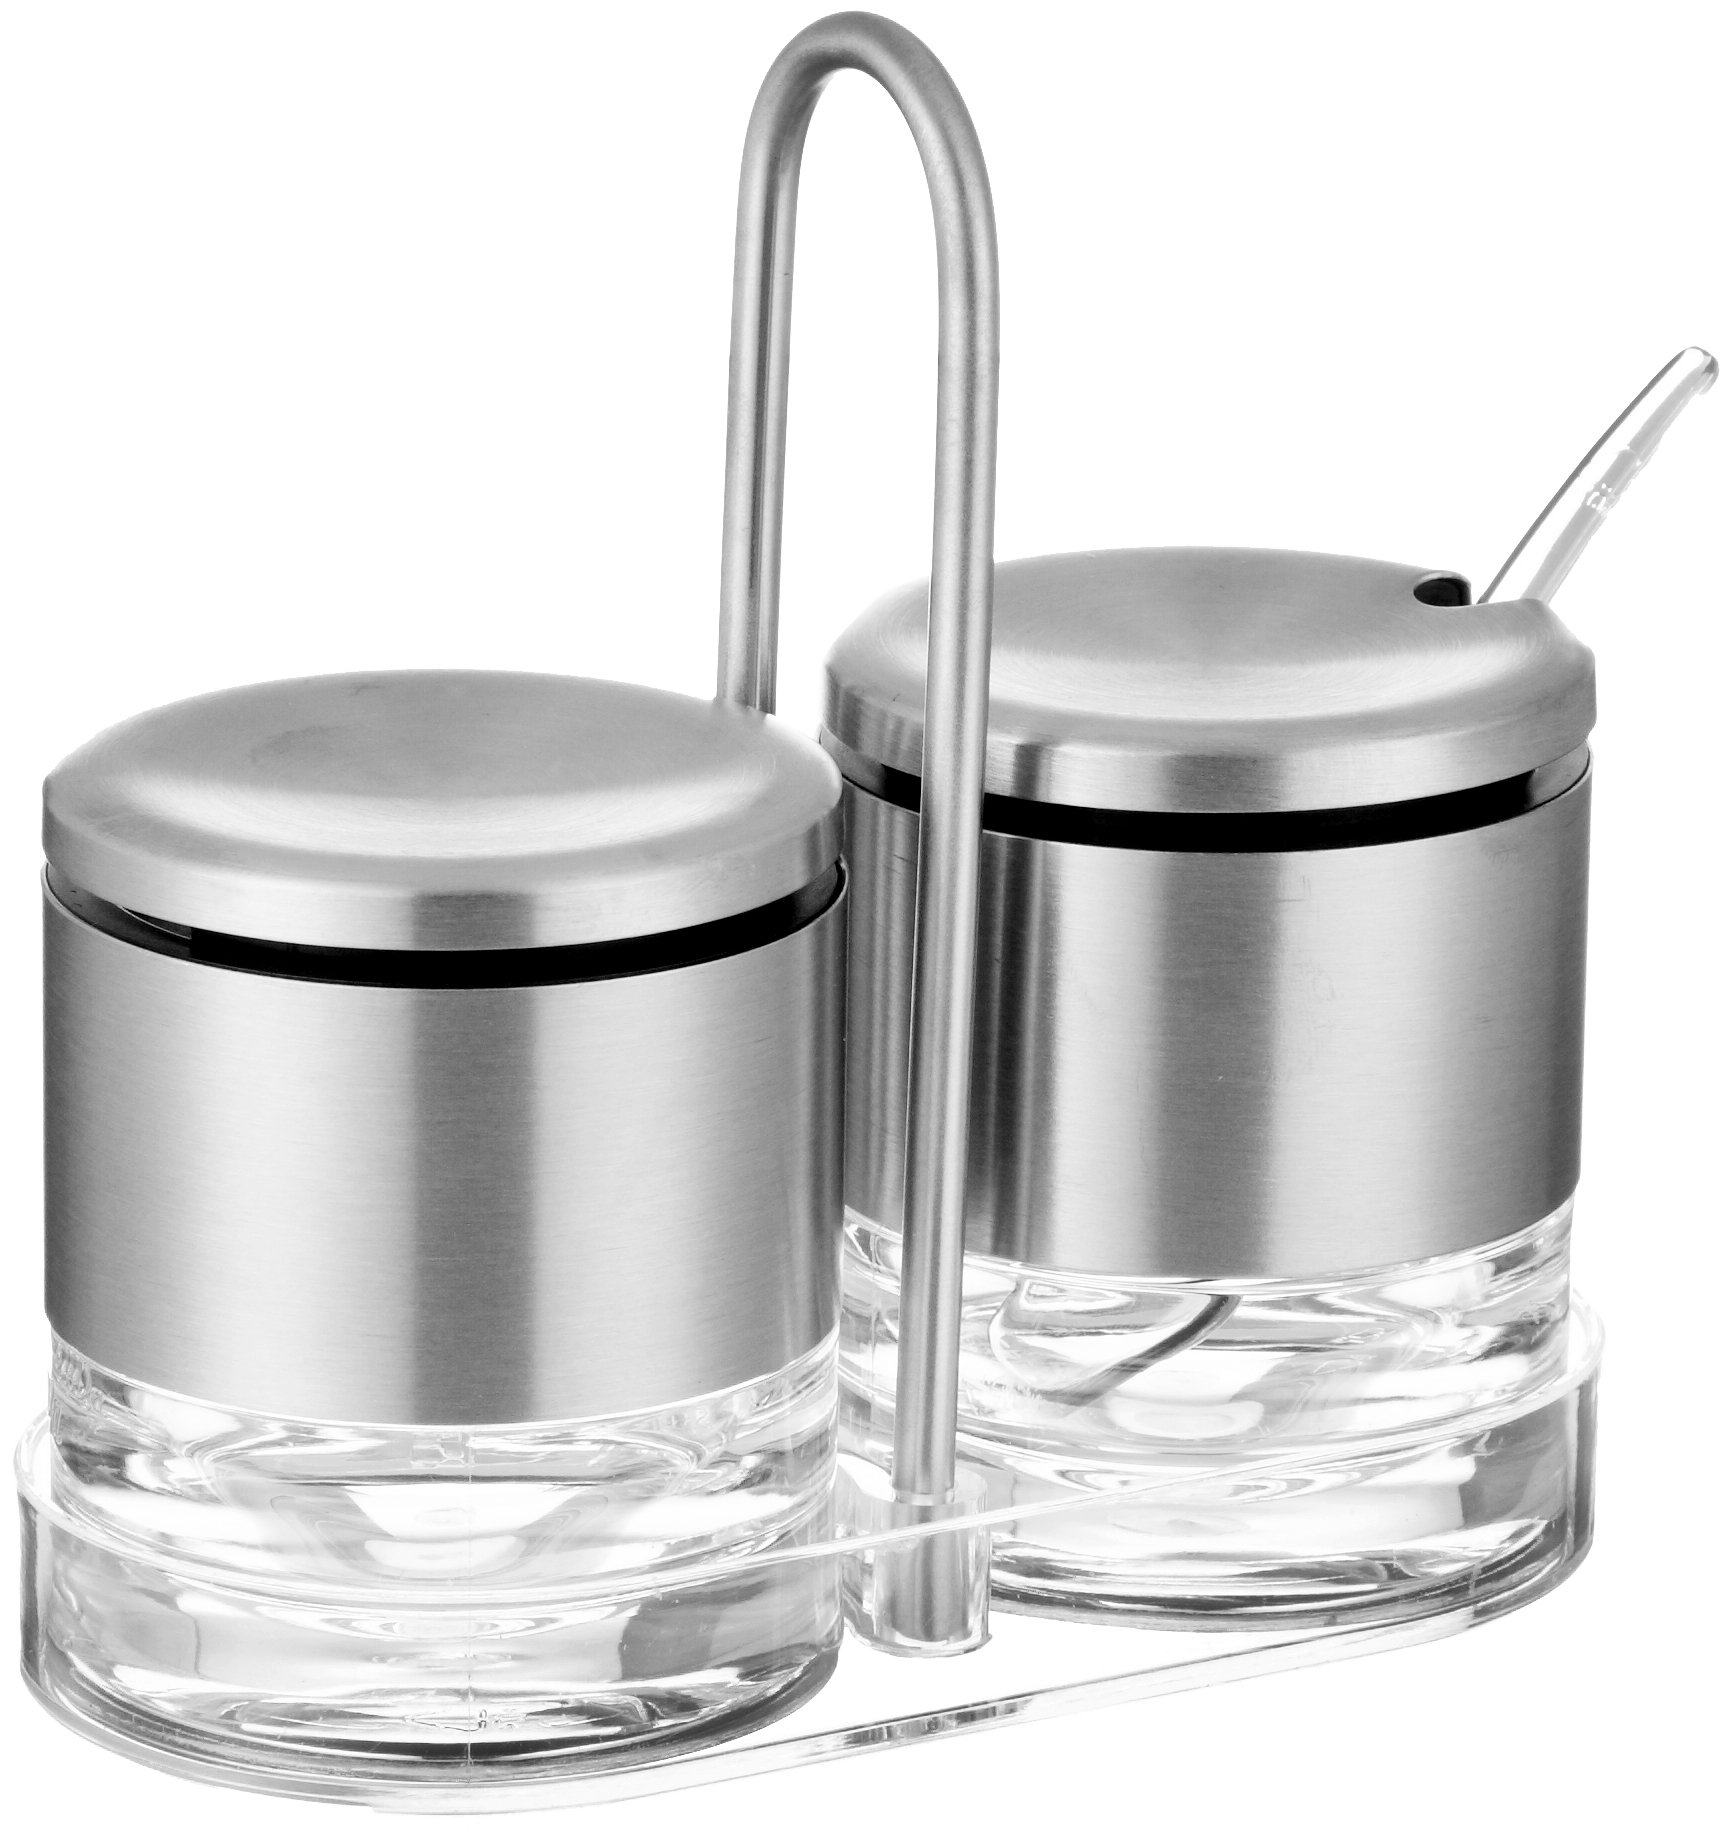 Emsa Cream Sugar Stand''Accenta'' of Stainless Steel, Silver